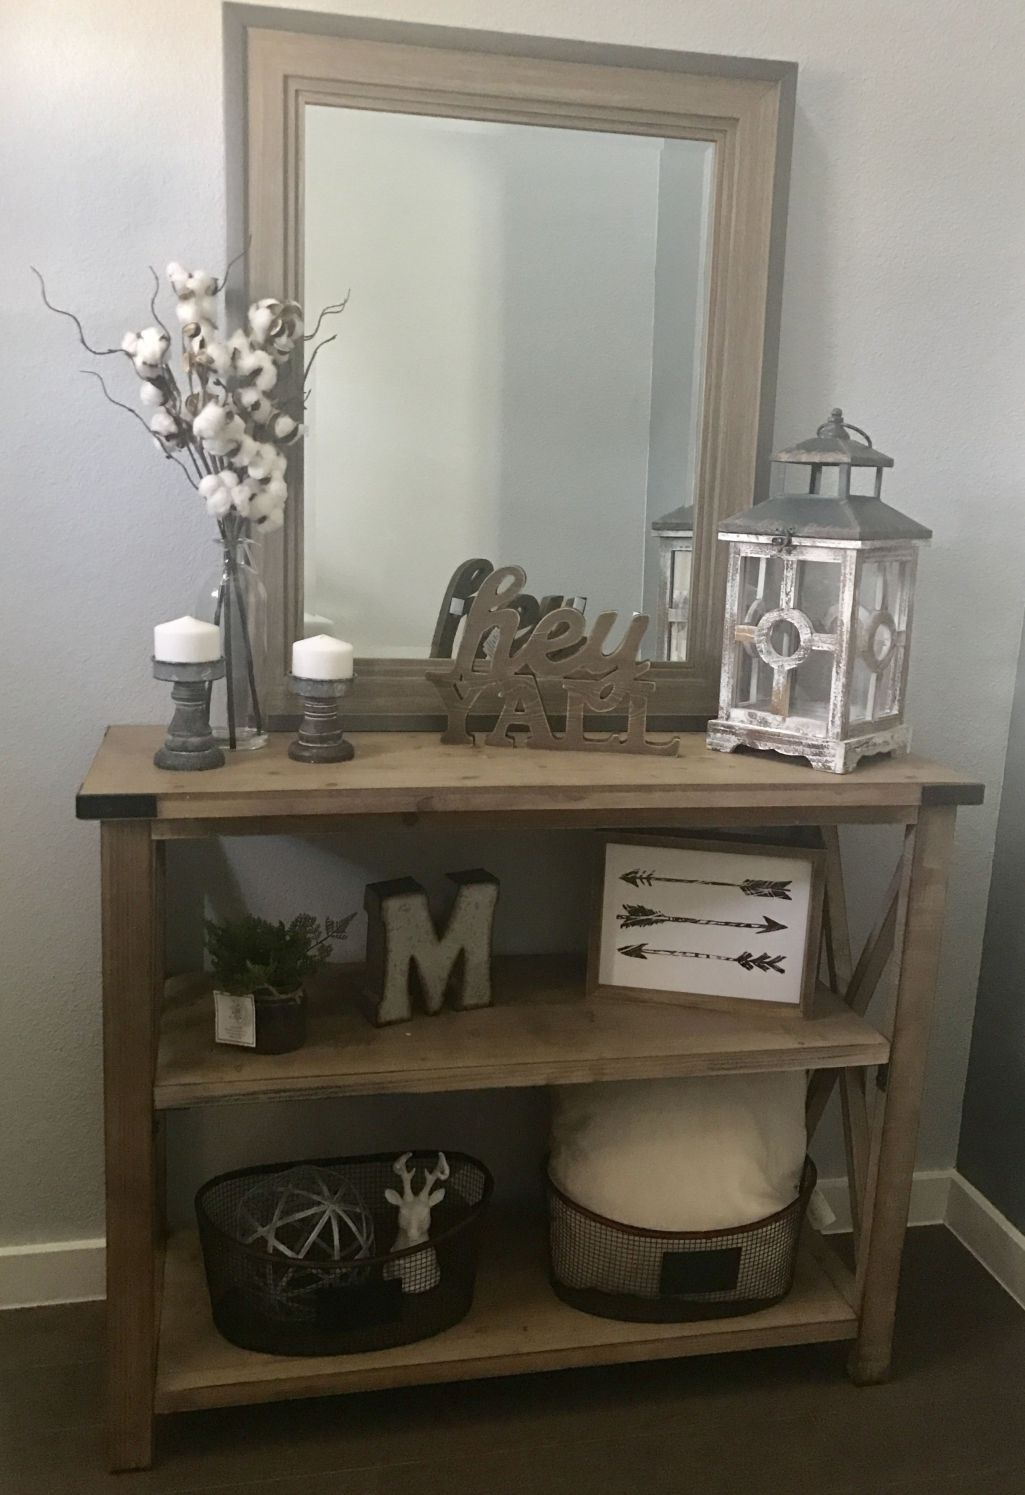 Farmhouse Decorating Style For Living Room And Kitchen Console Table Decorating Entry Table Decor Home Decor